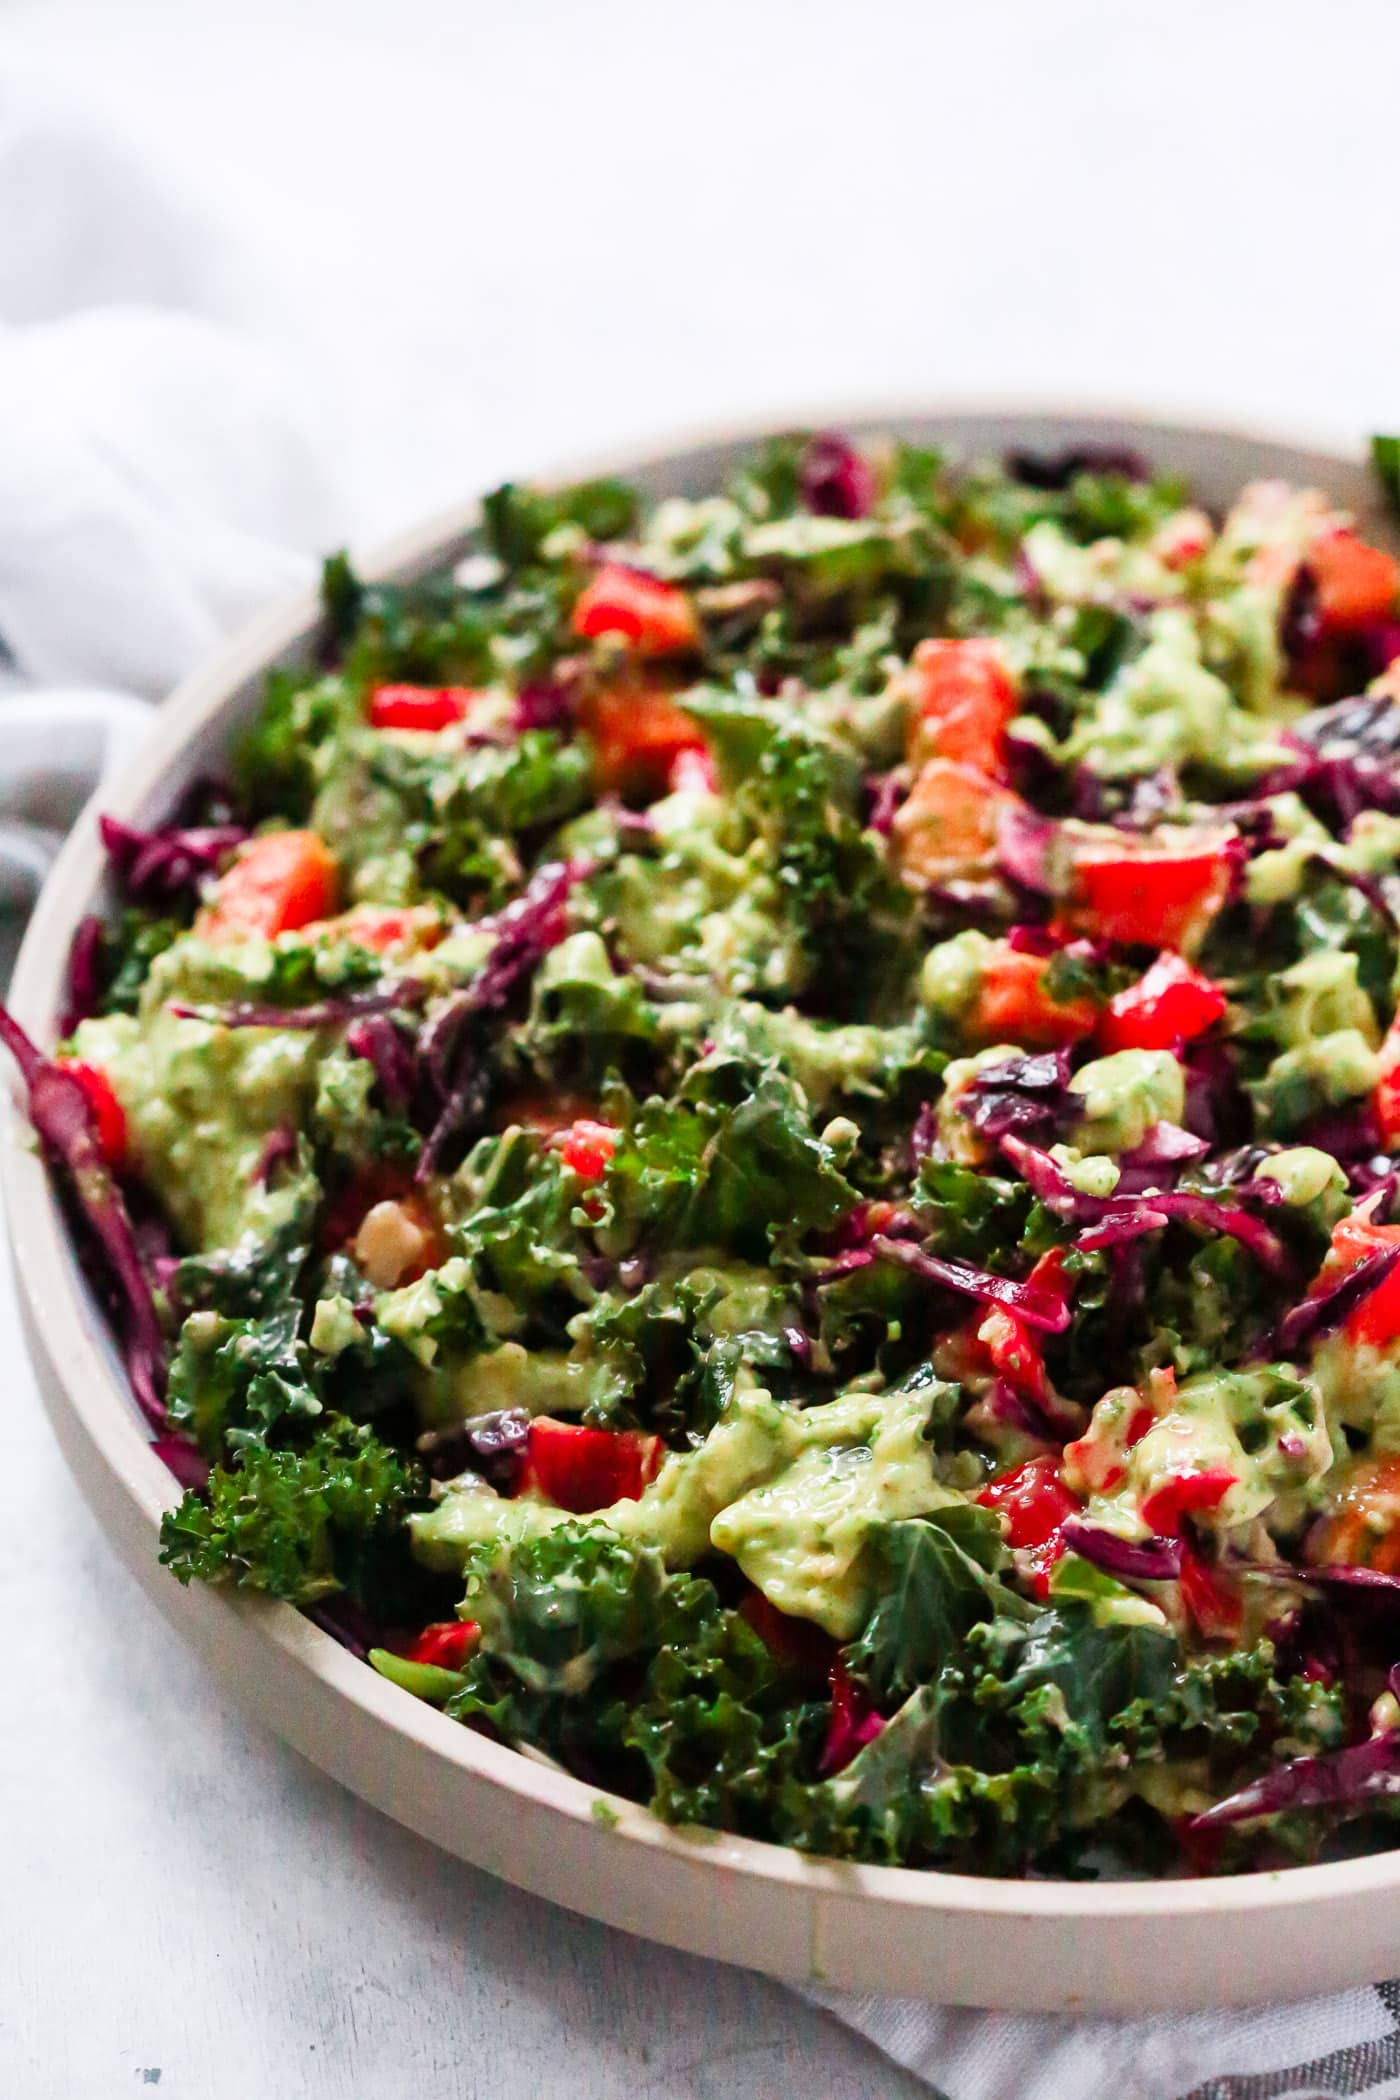 Simple Kale Salad with Avocado Dressing - Primavera Kitchen